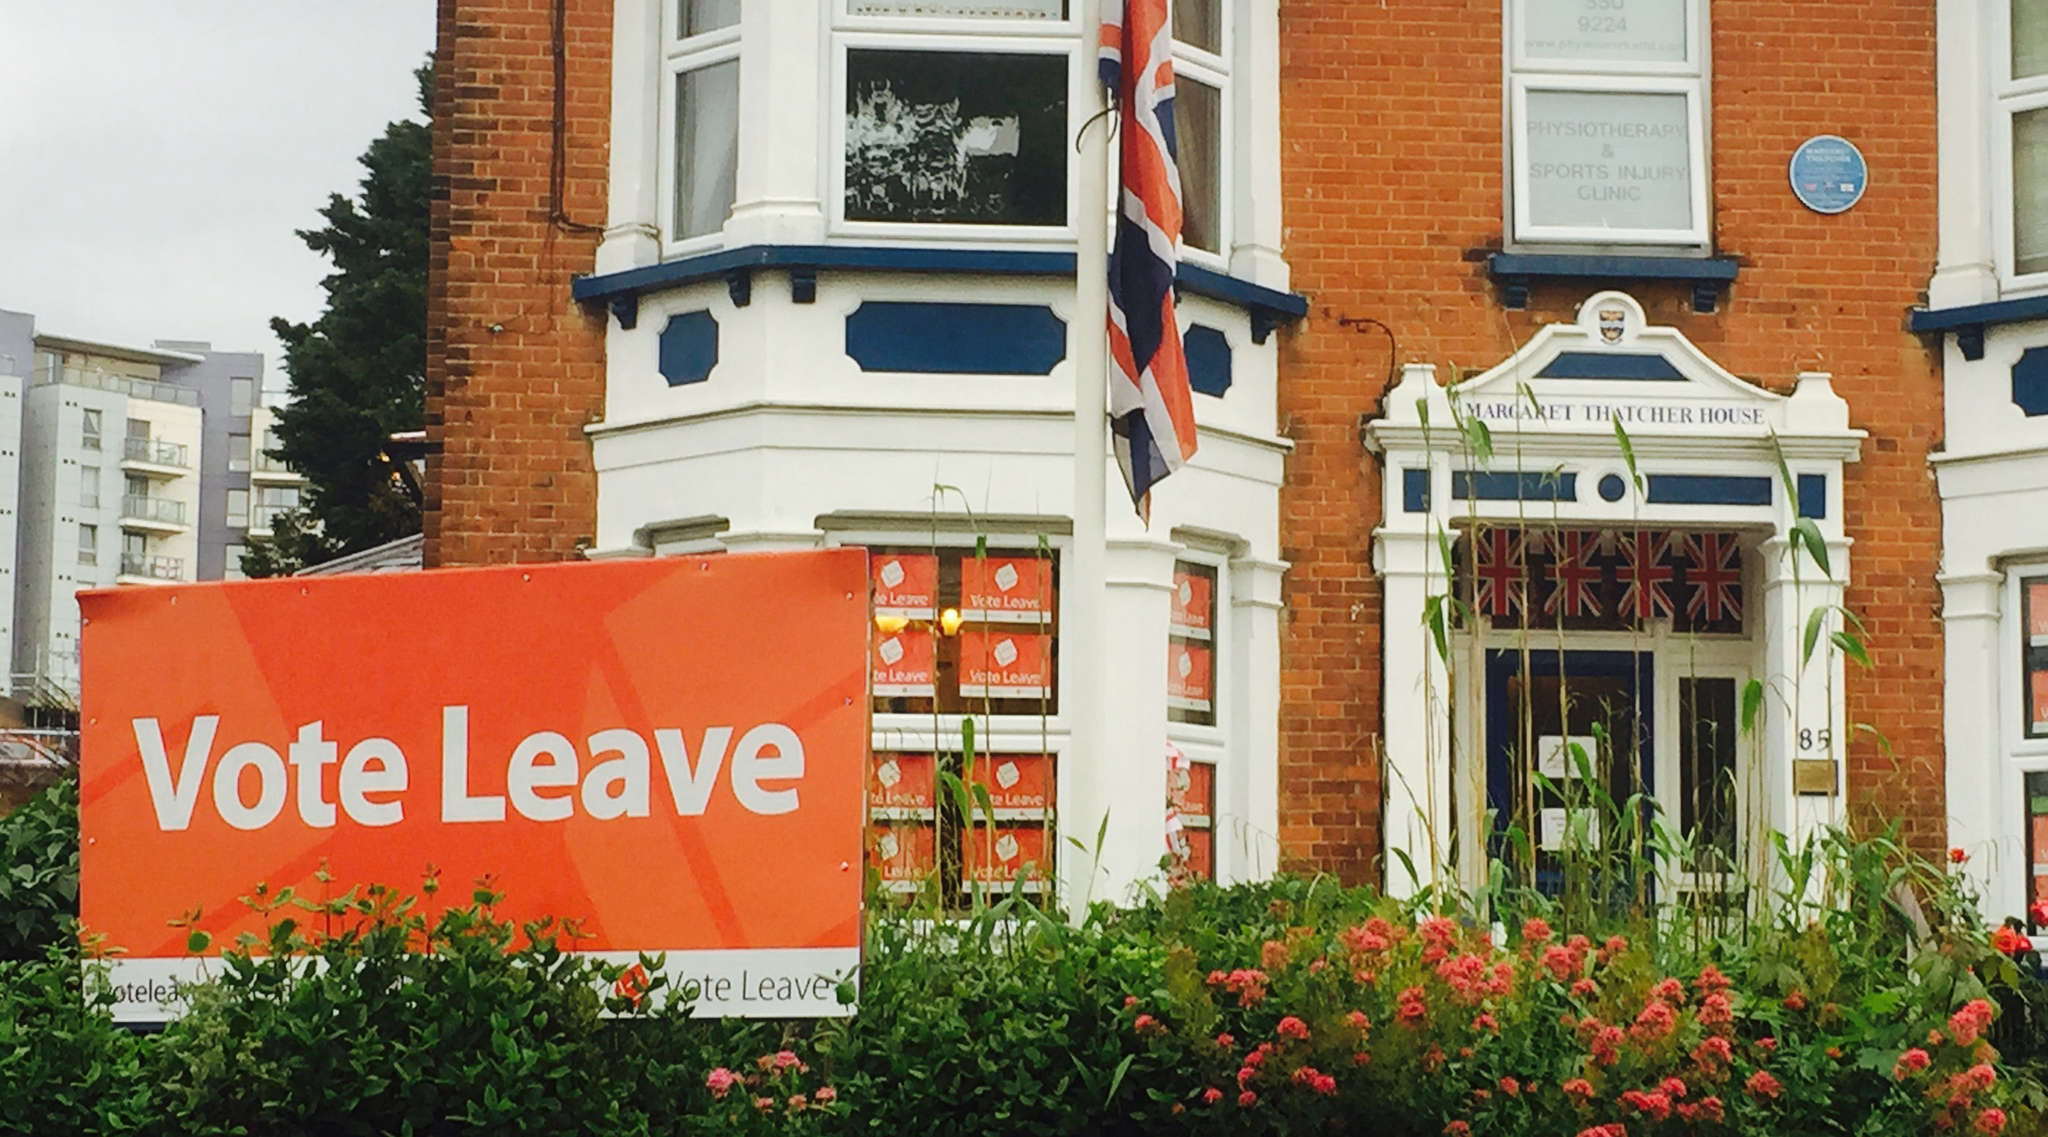 The Conservative Party headquarters in Romford - the Margaret Thatcher House - reflects the pro-Leave view on Brexit.